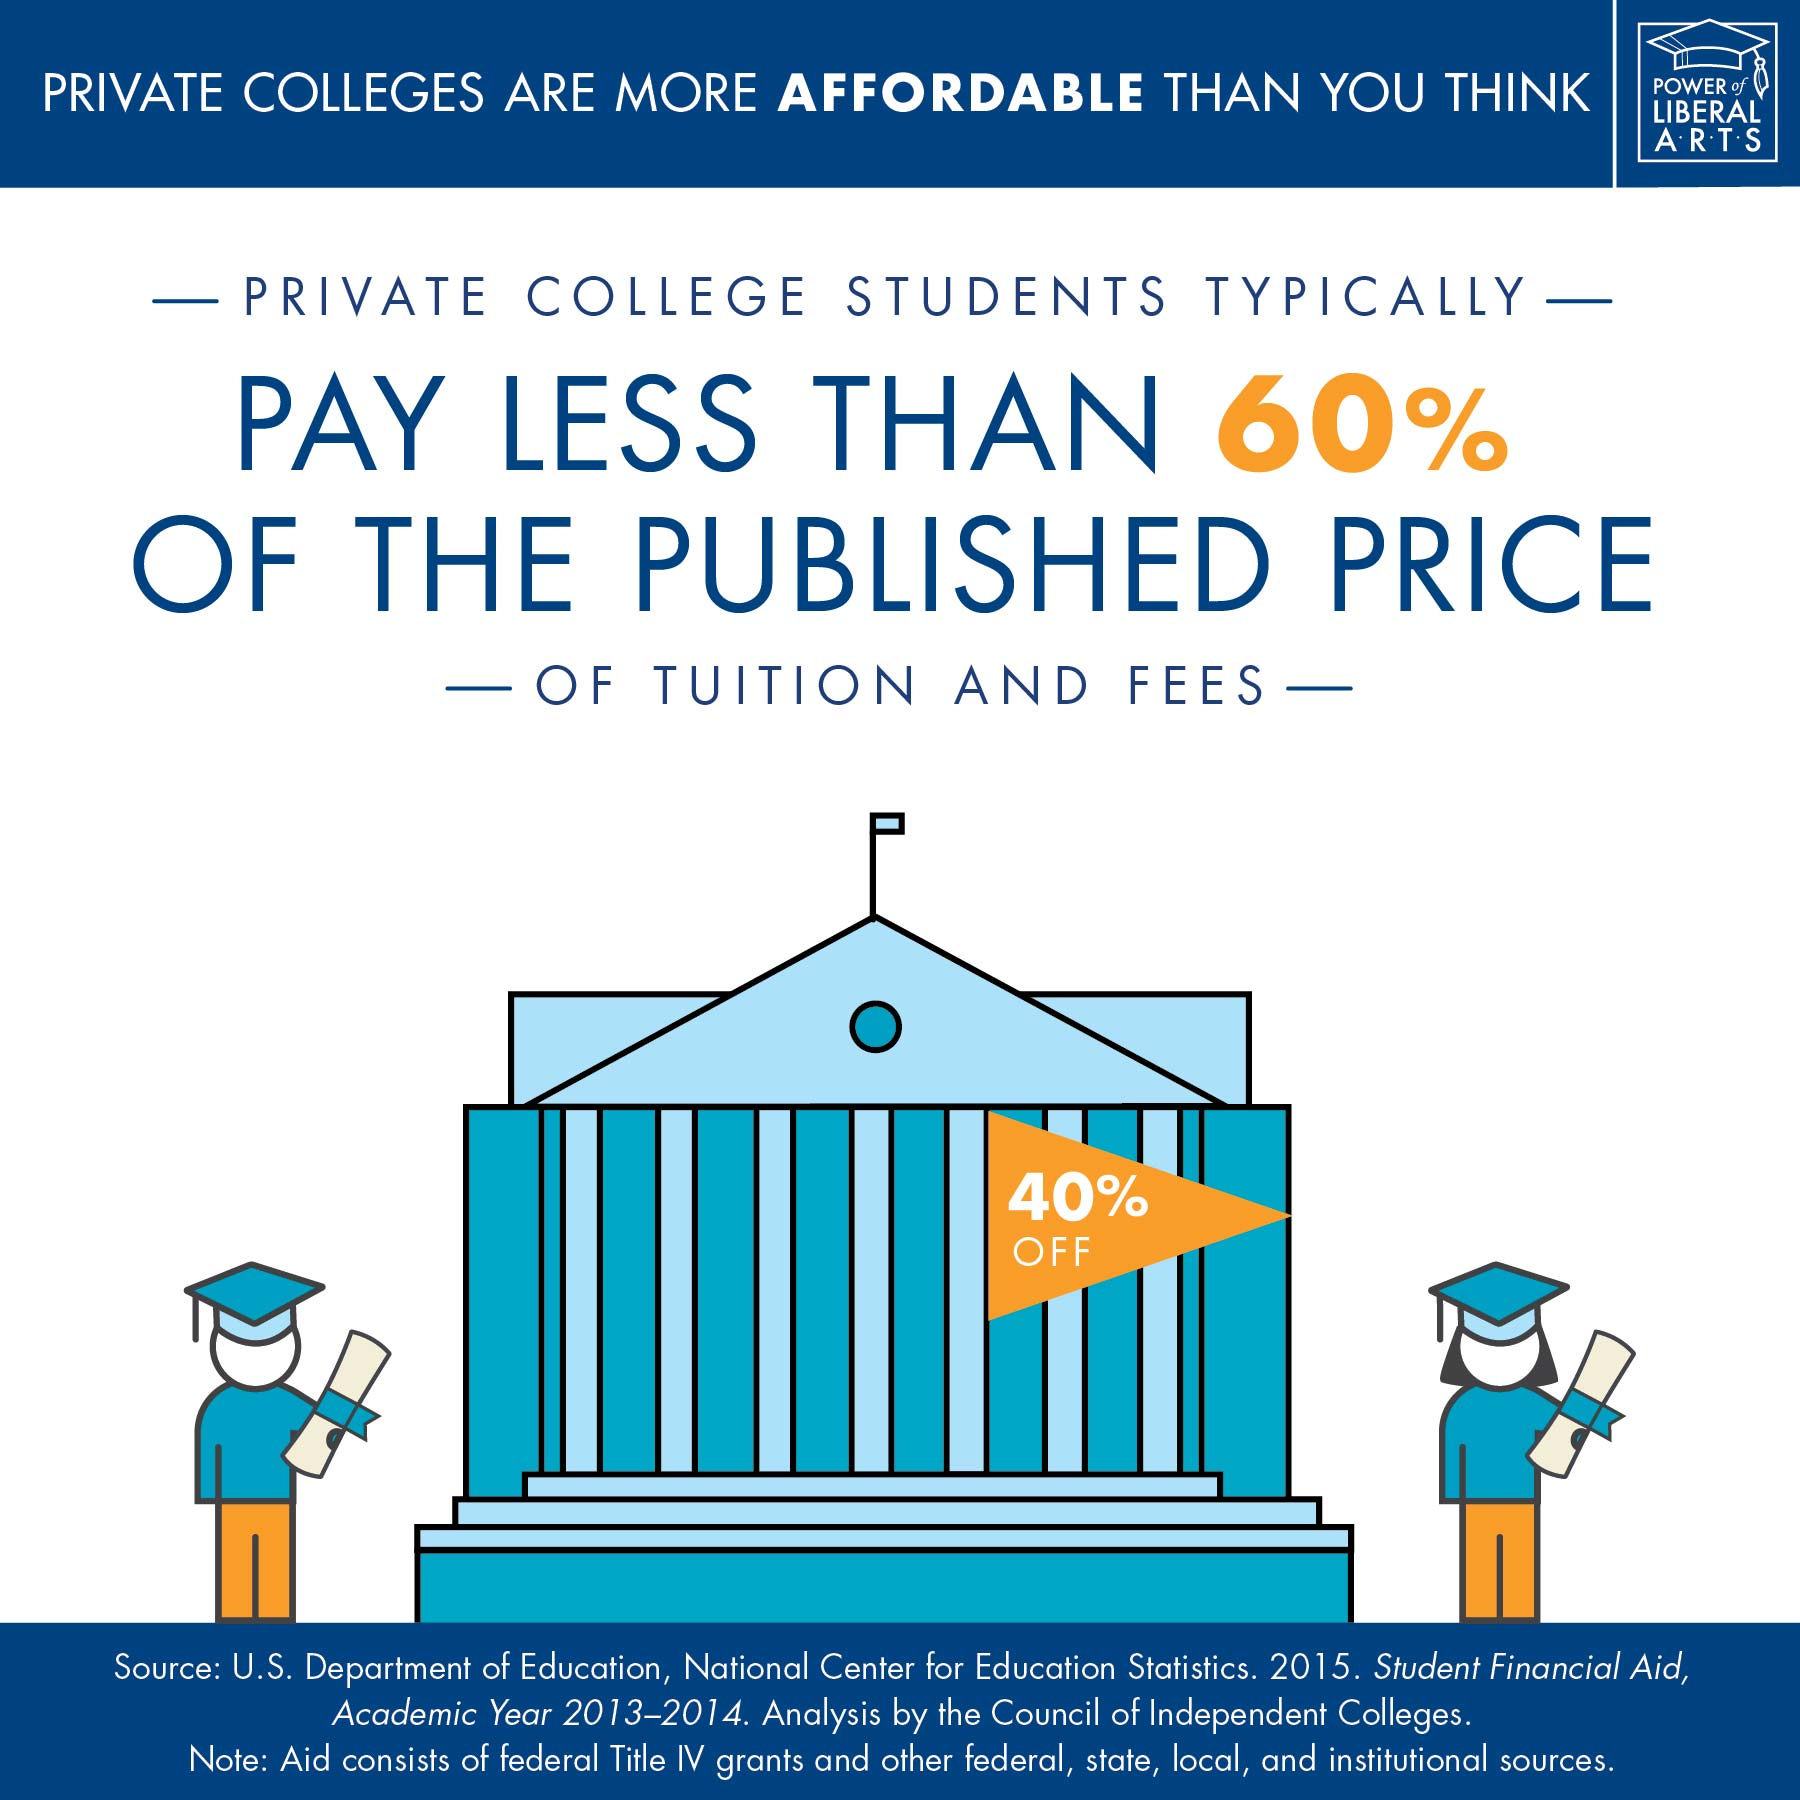 Infographic: Private college students typically pay less than 60% of the published price of tuition and fees